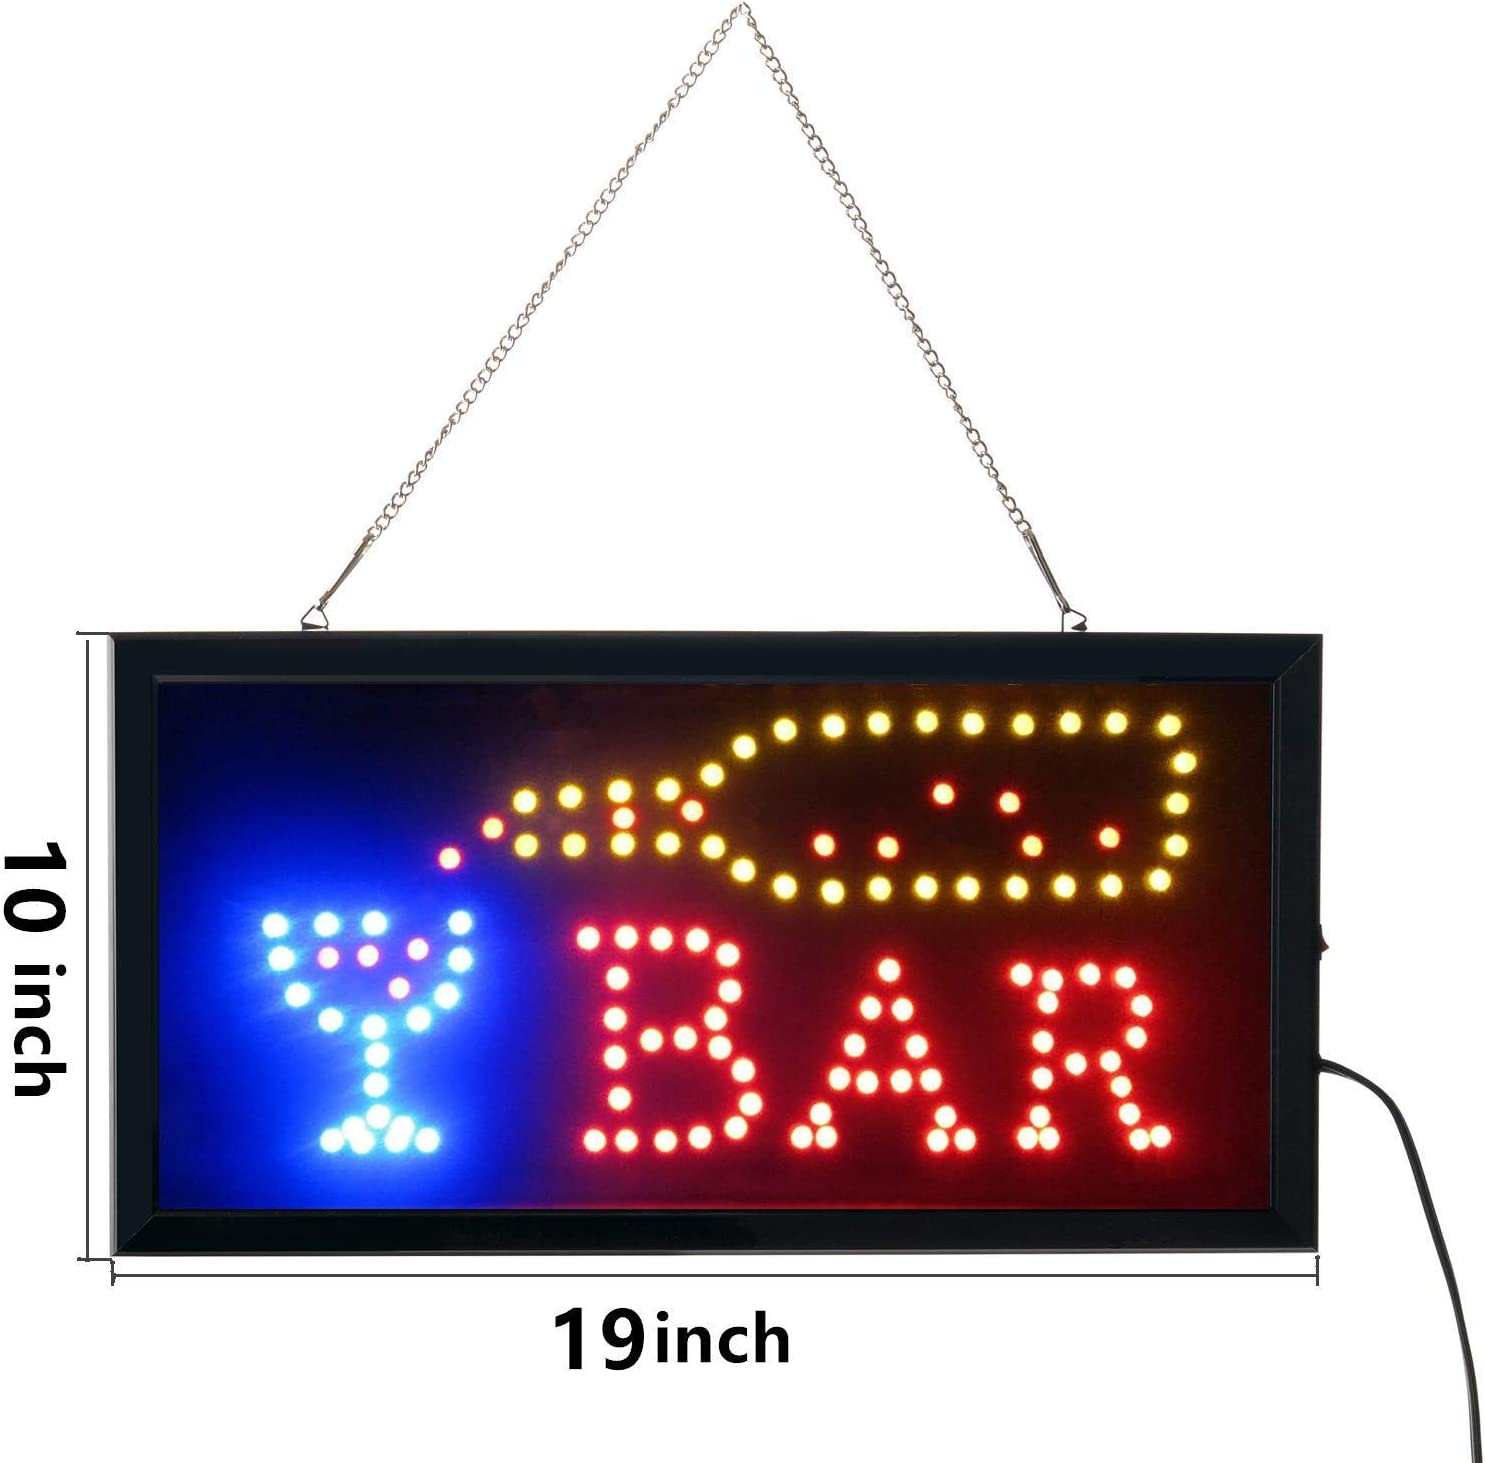 Bar Open Sign Led Neon Light Sign Electric Display Sign 19x10inch Two Modes Flashing /& Steady Light for Business Bar Sign Led Bar Signs